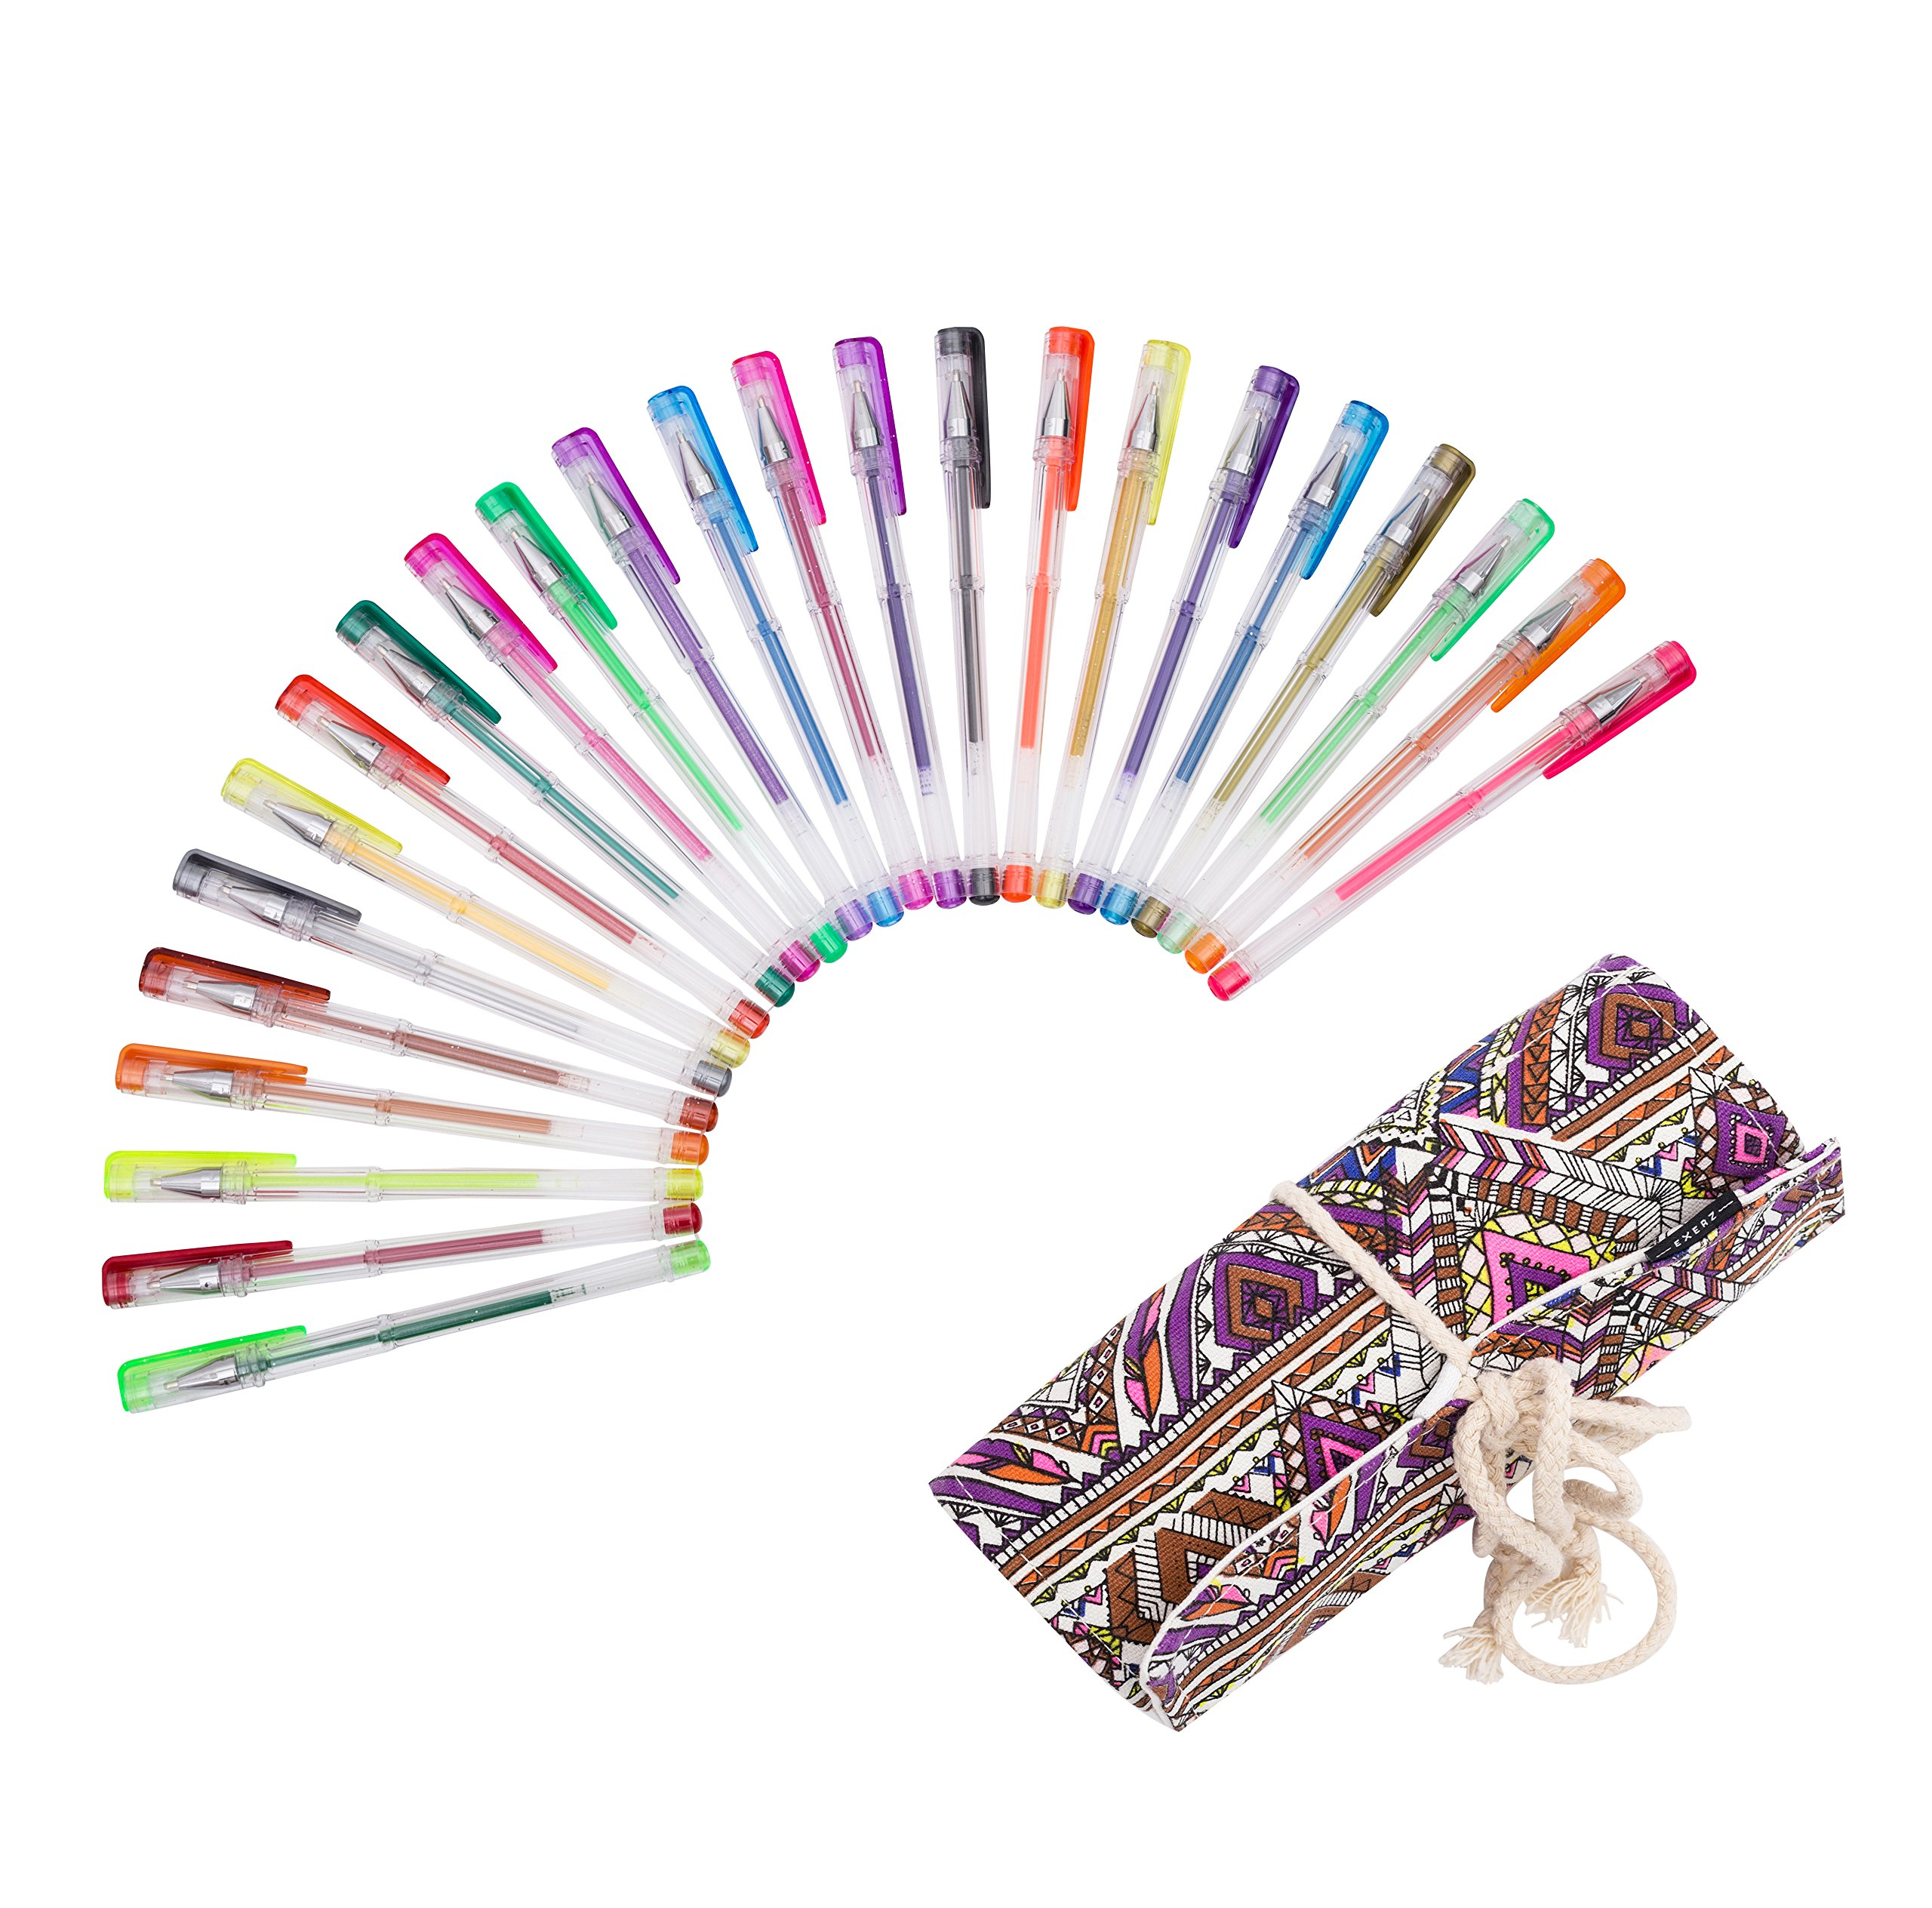 Exerz ART 24 PCS colour gel pens set with a string wrap – roll up pouch, fine ink ballpoint pens,, vibrant color, free flowing, glitter pens, neon, metallic and glitter neon